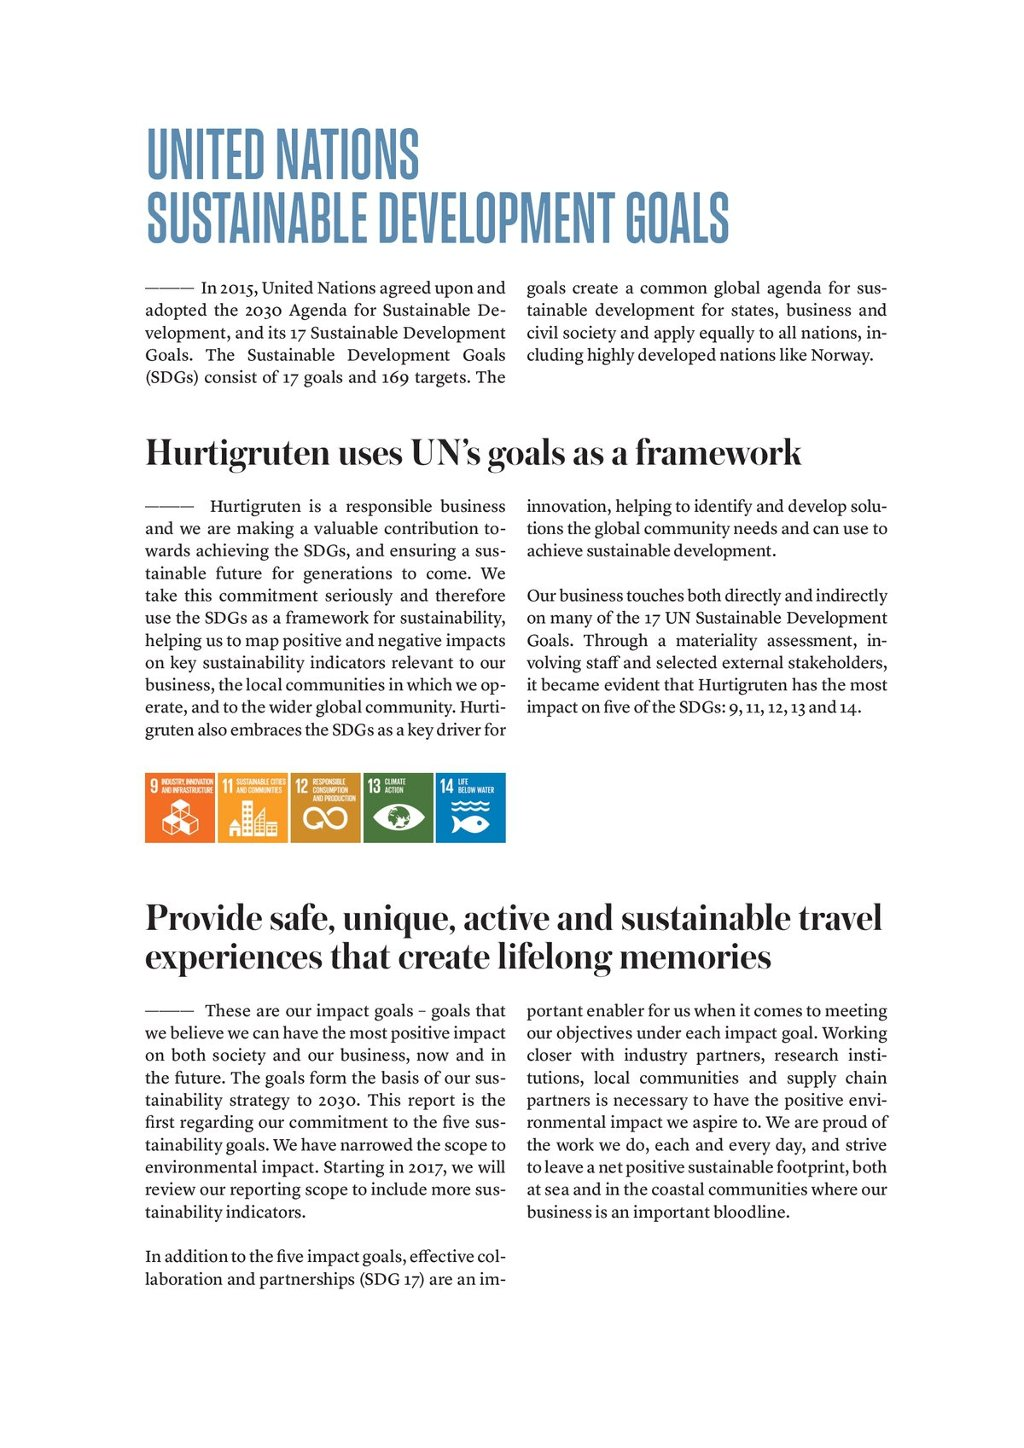 Our Corporate Social Responsibility | Hurtigruten